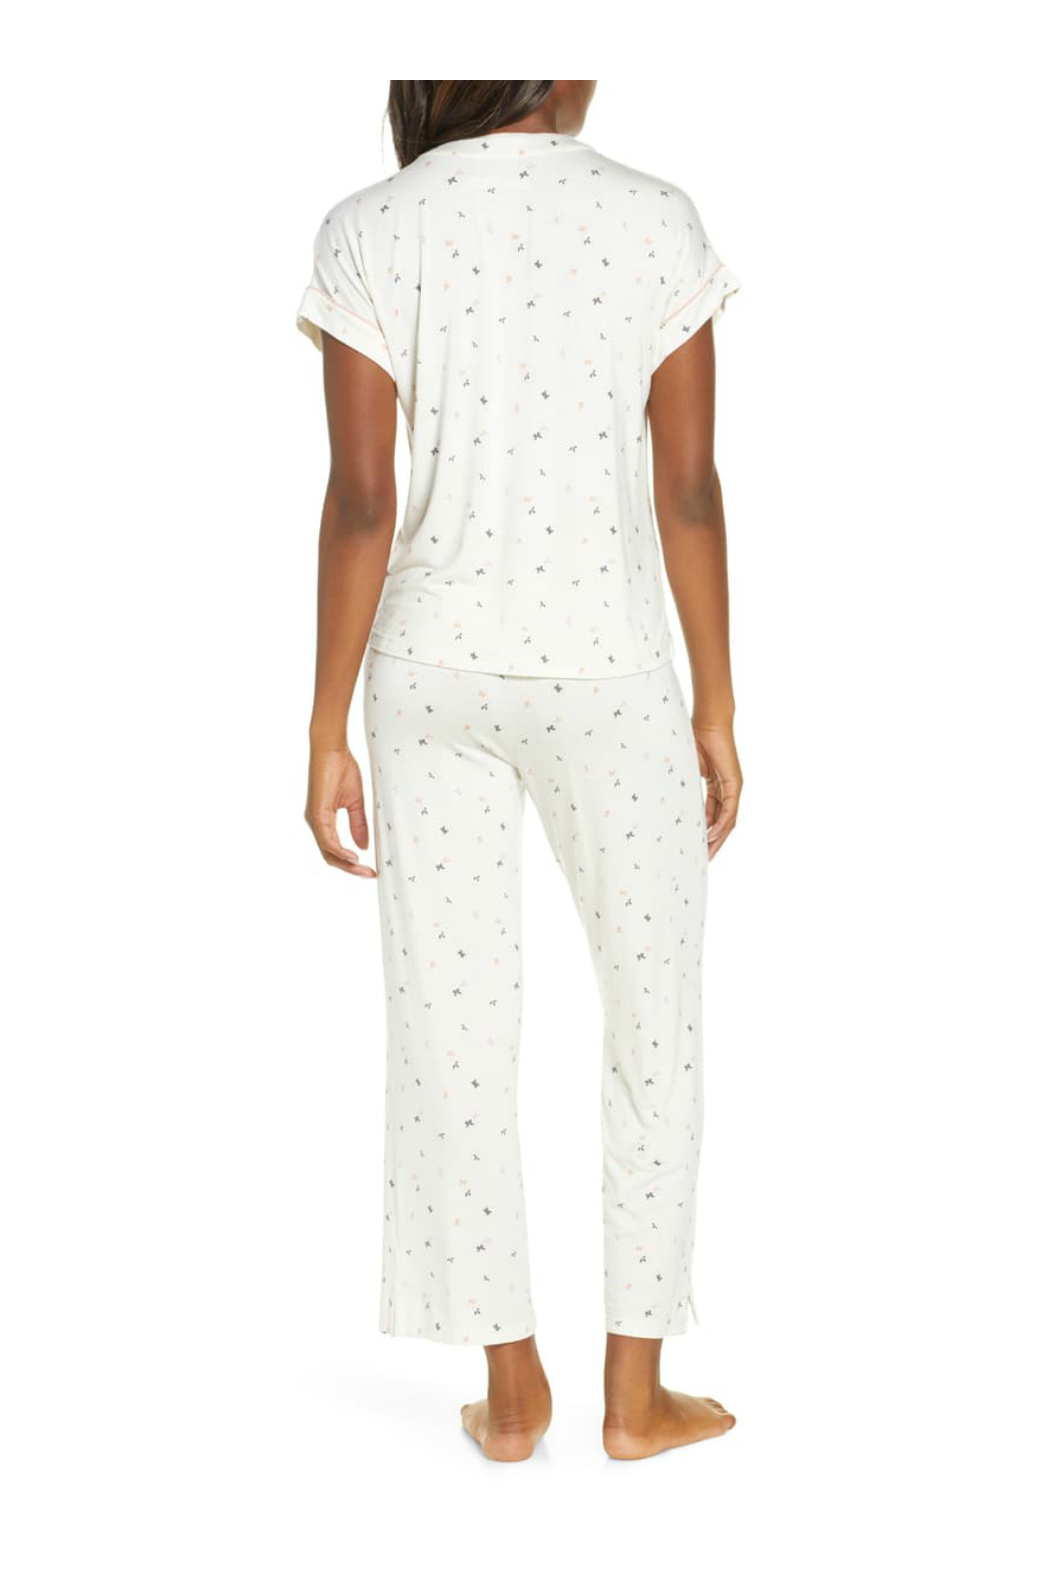 Ugg ADDI SLEEPWEAR SET - Side Cropped Image